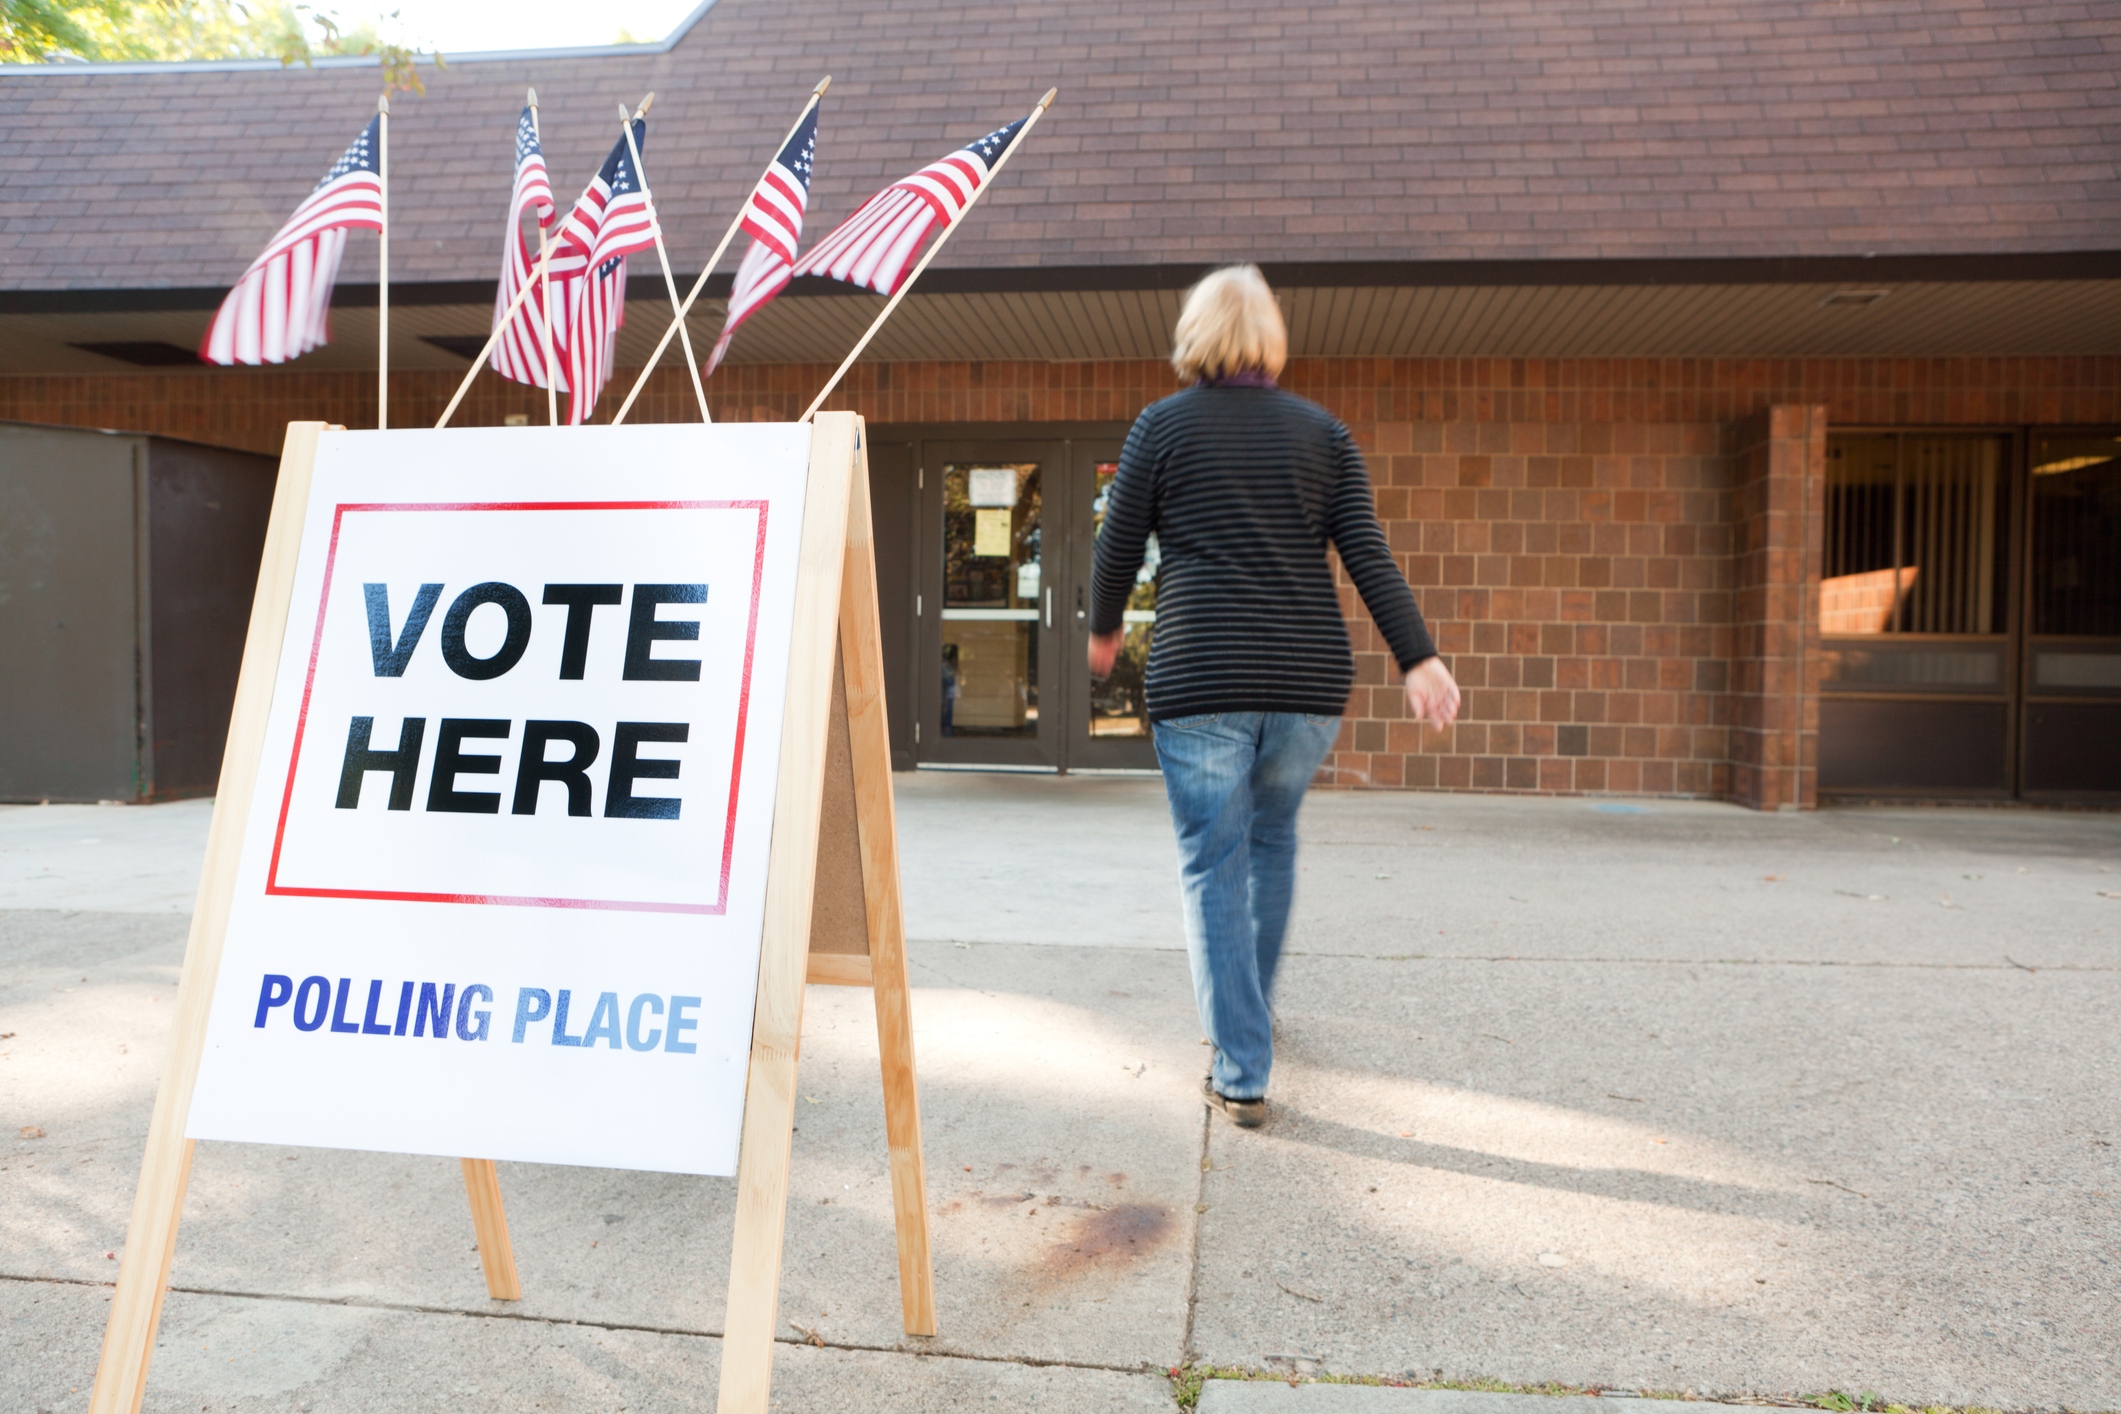 USA Election Voter Going to Polling Place Station